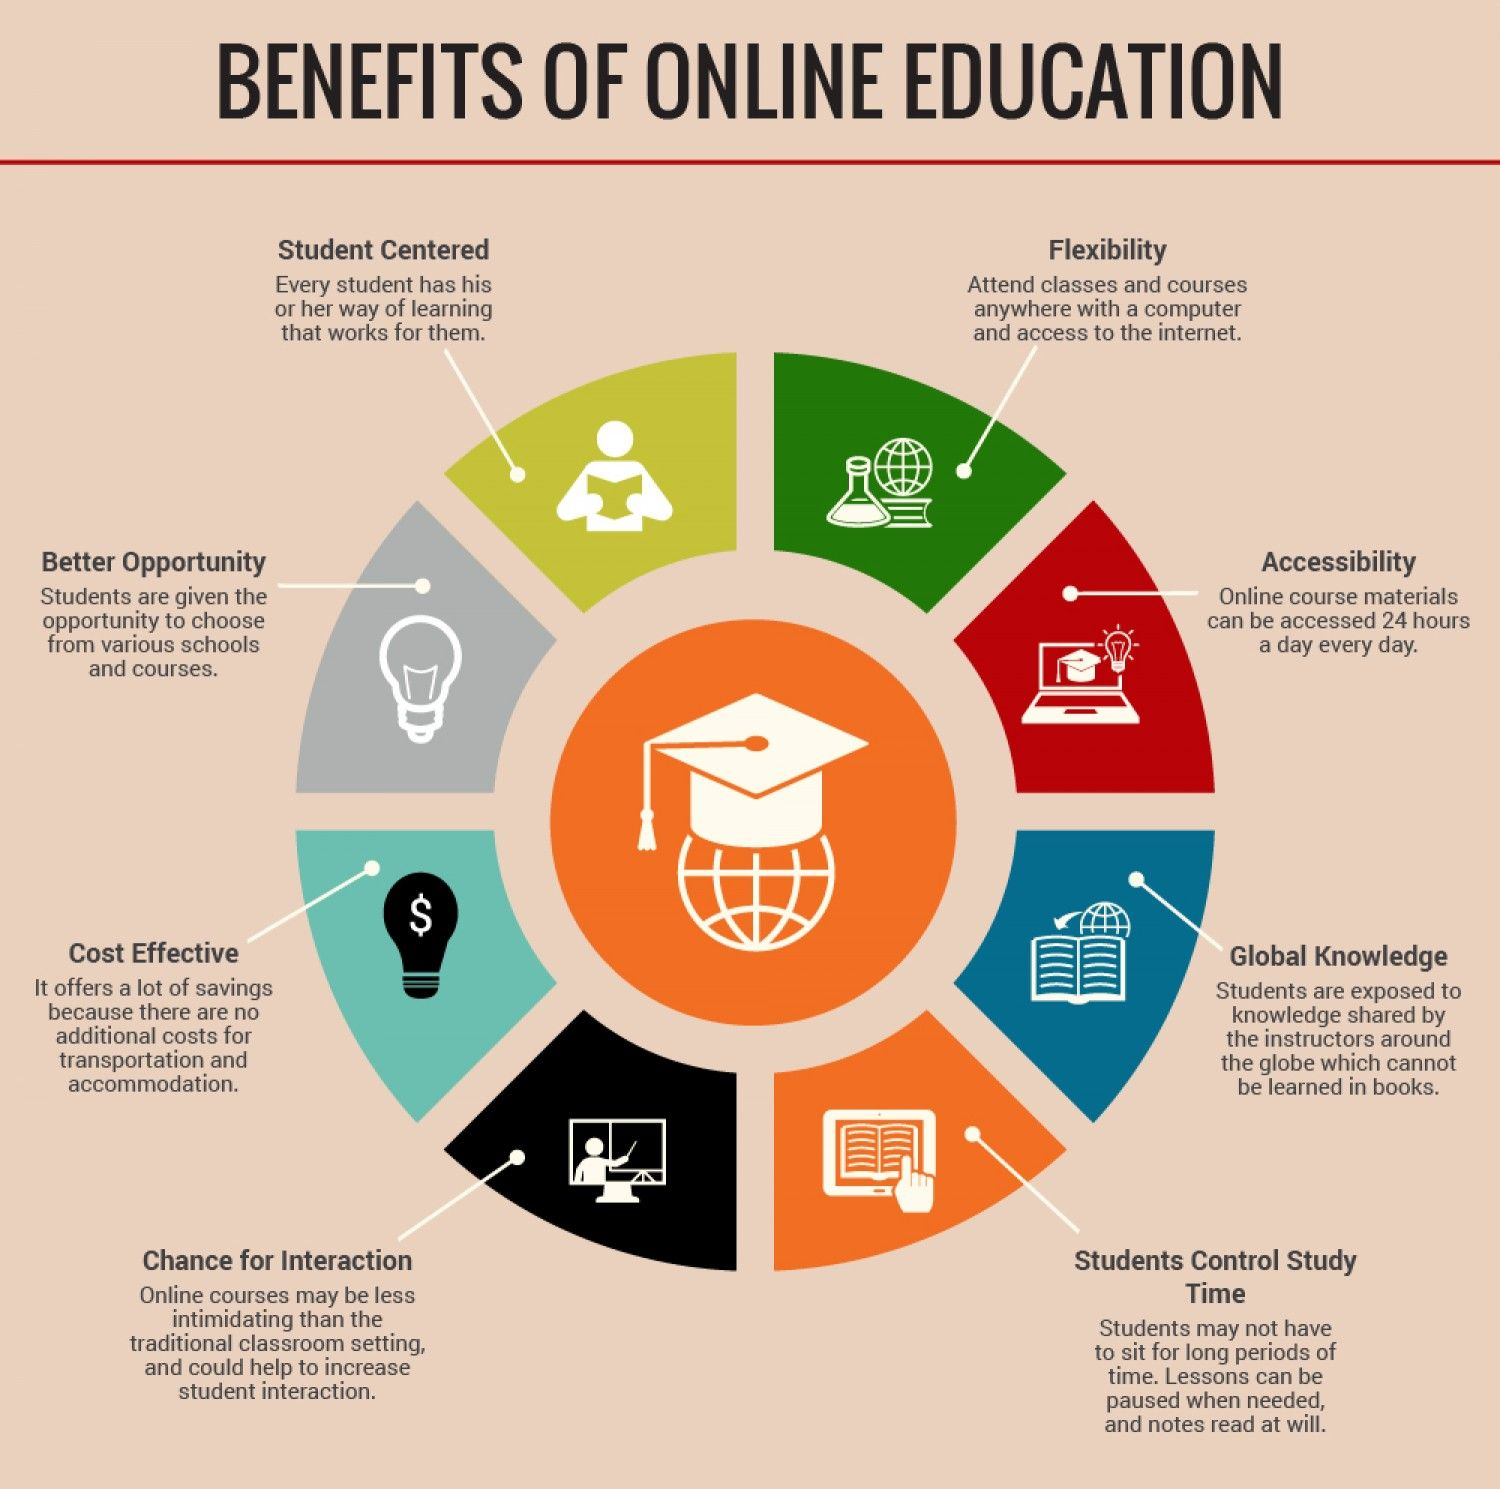 BENEFITS OF ONLINE EDUCATION Infographic